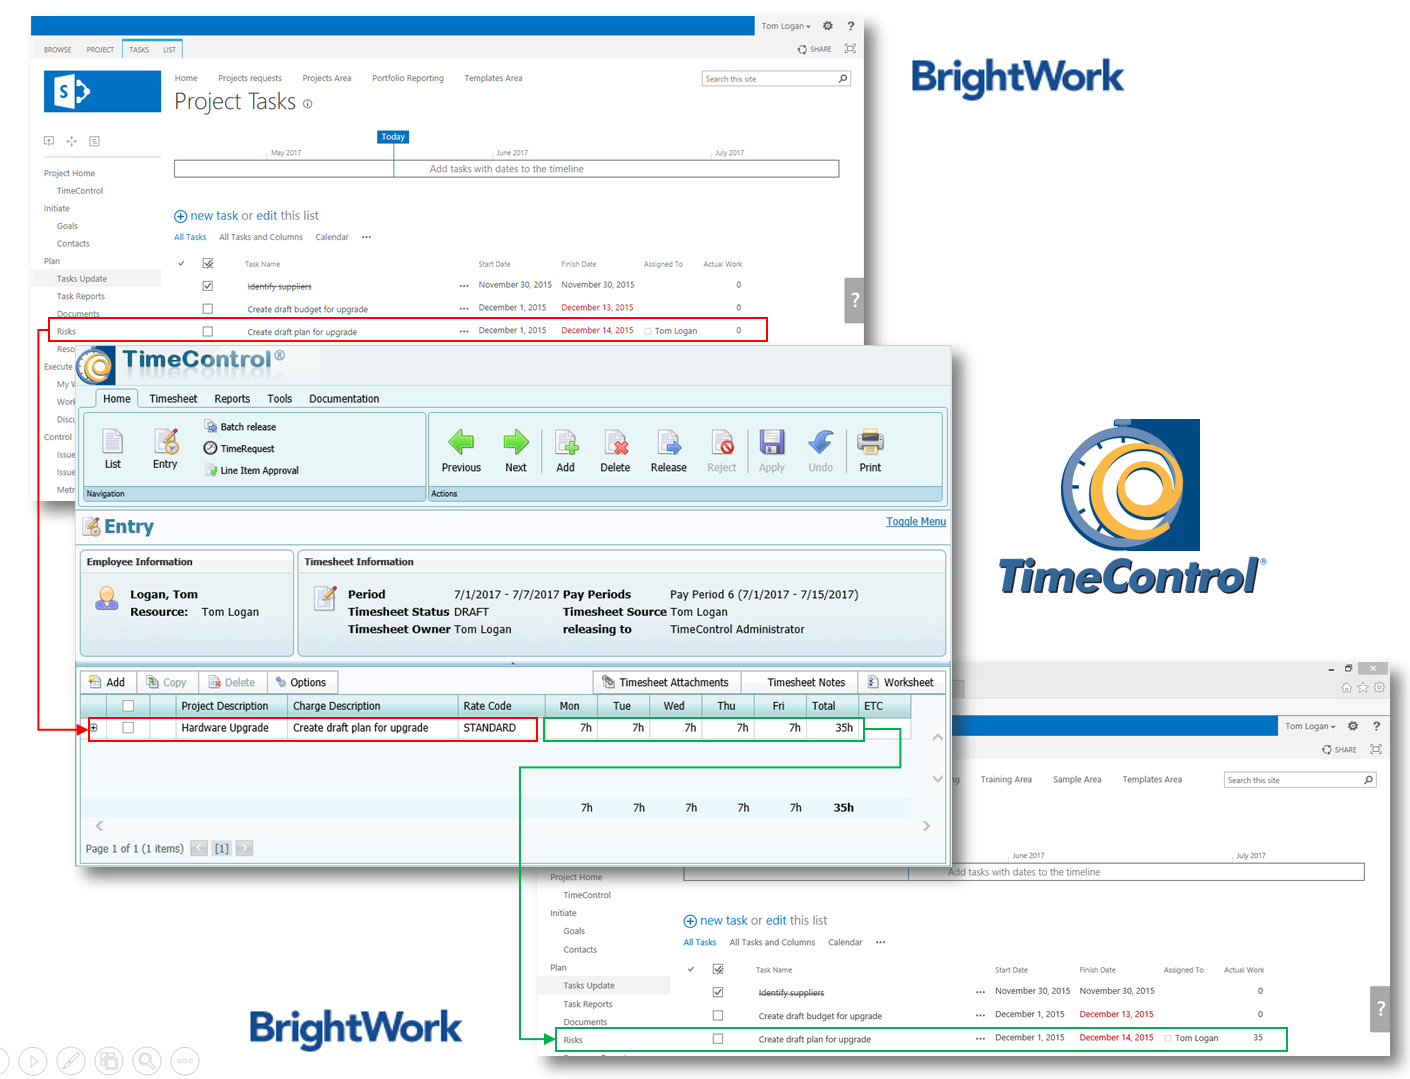 TimeControl and BrightWork